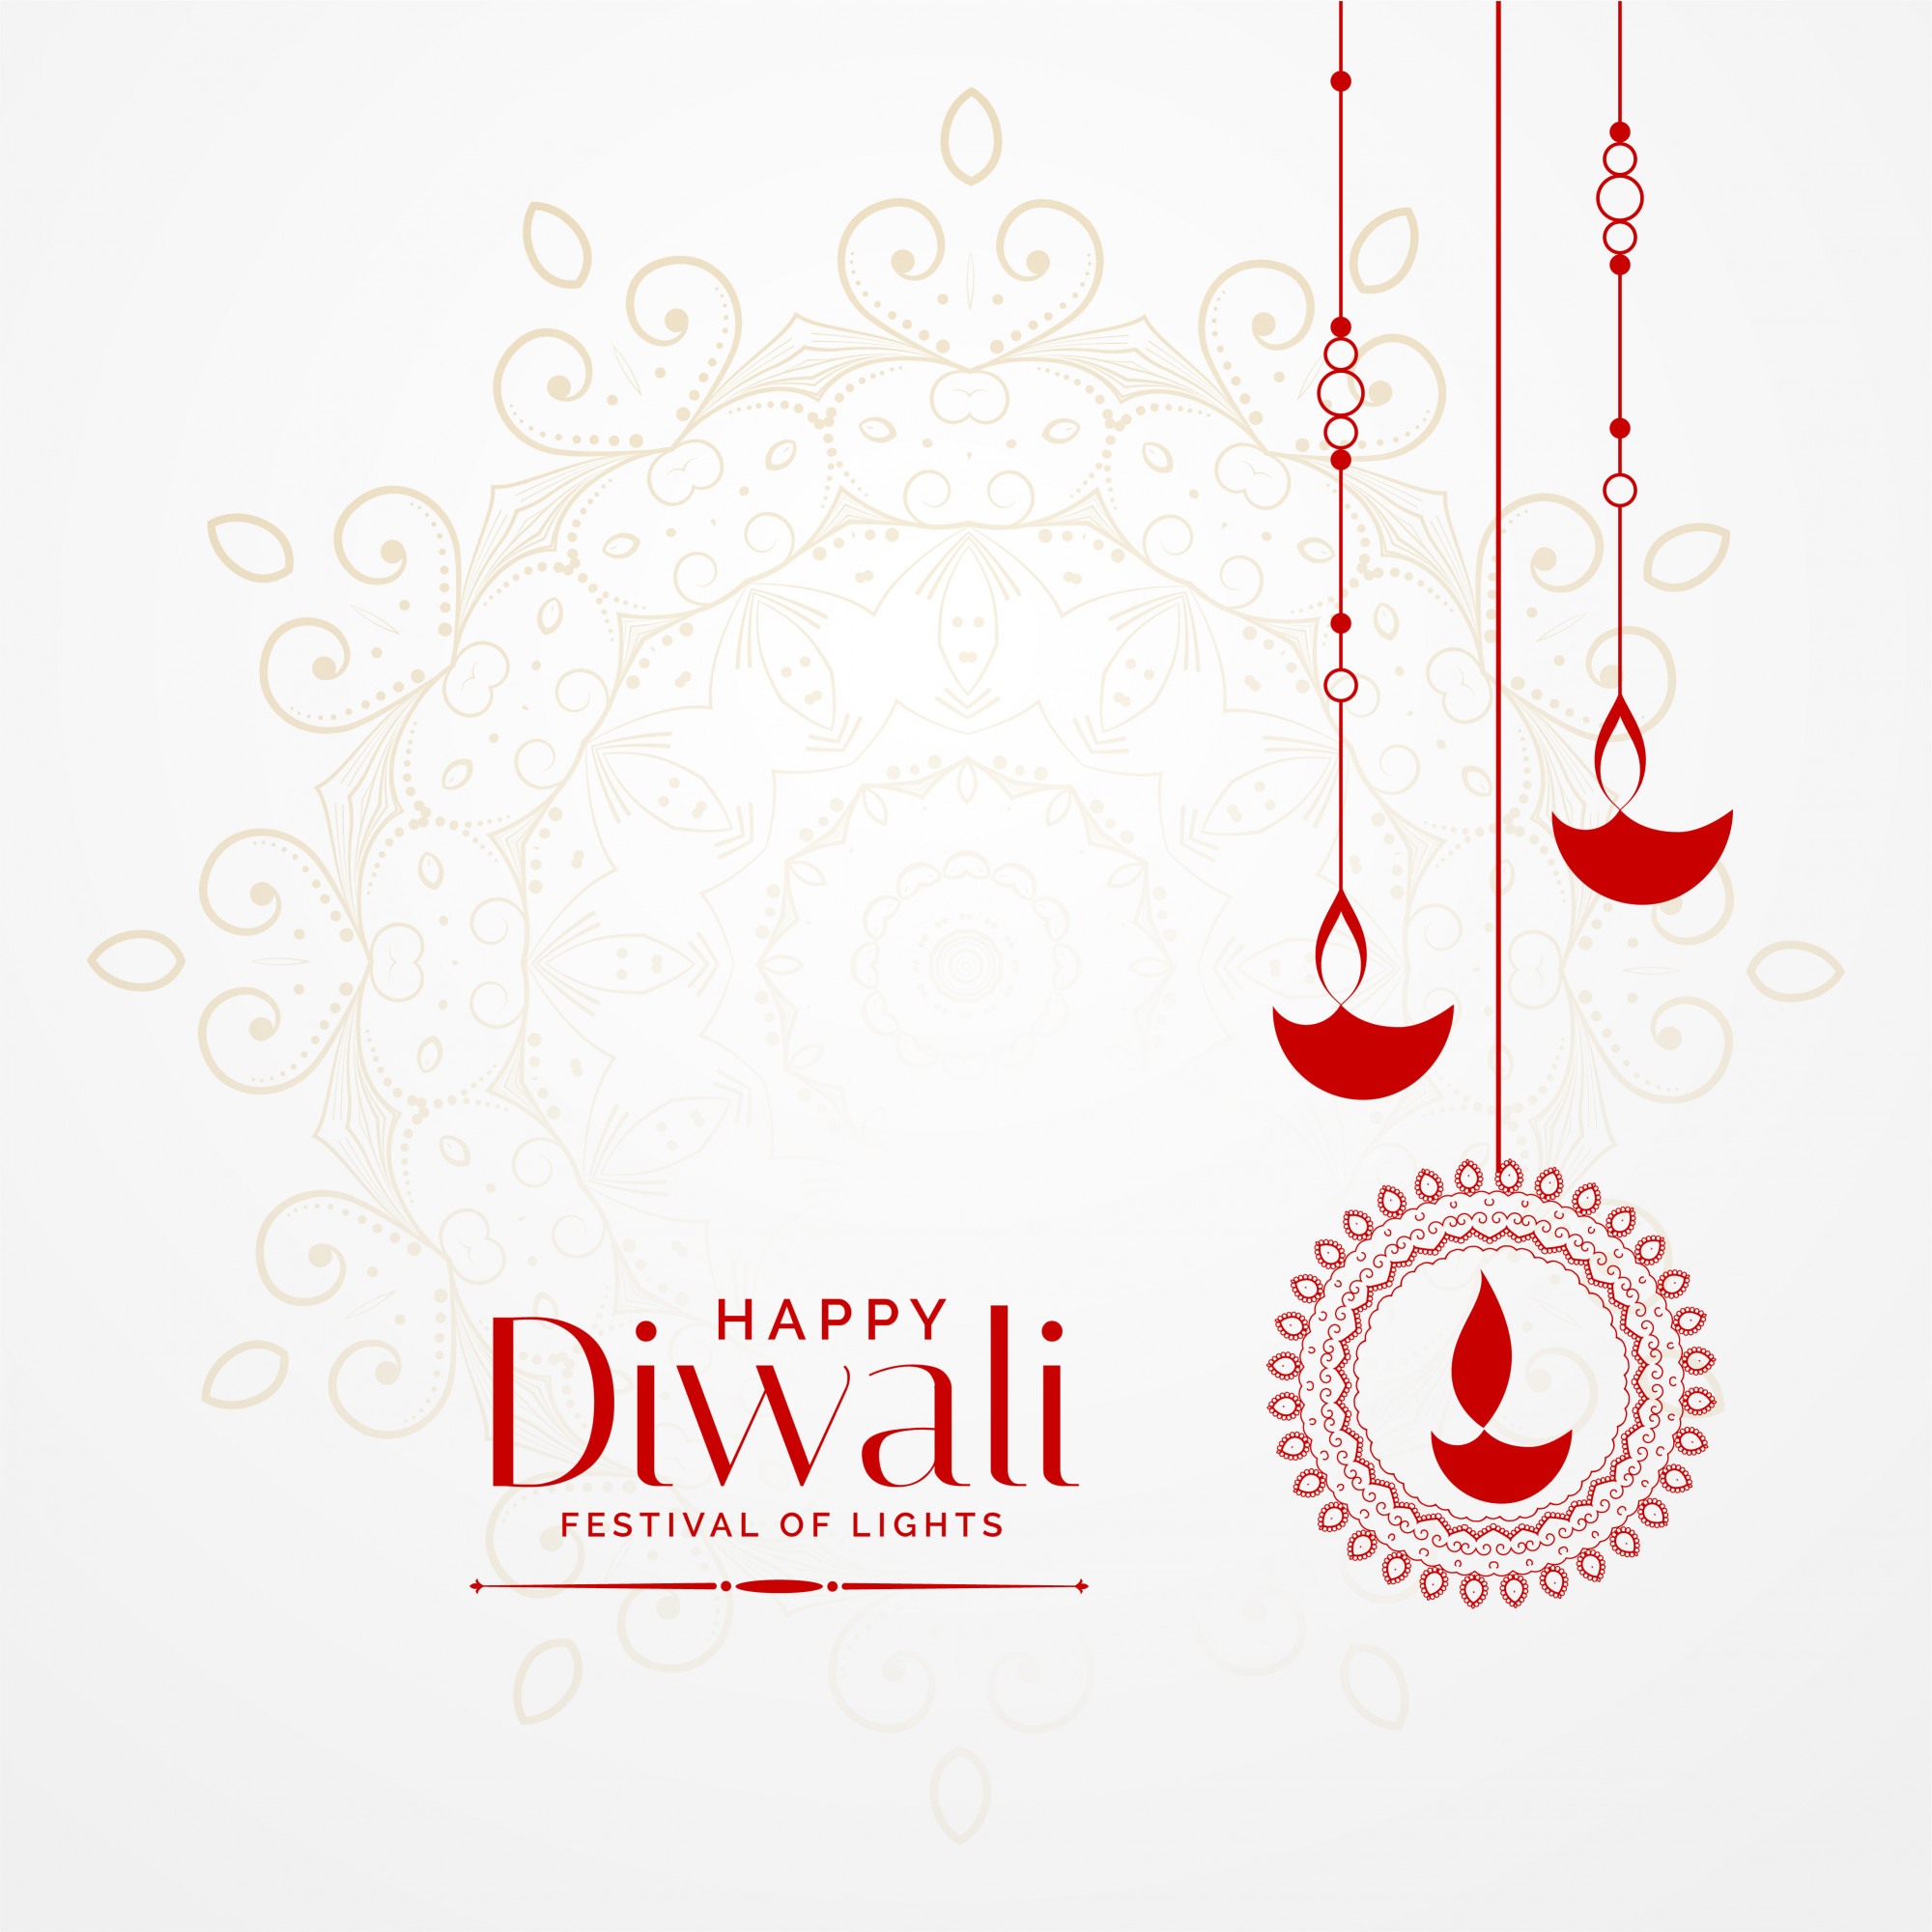 Hanging diwali diya lovely festival background